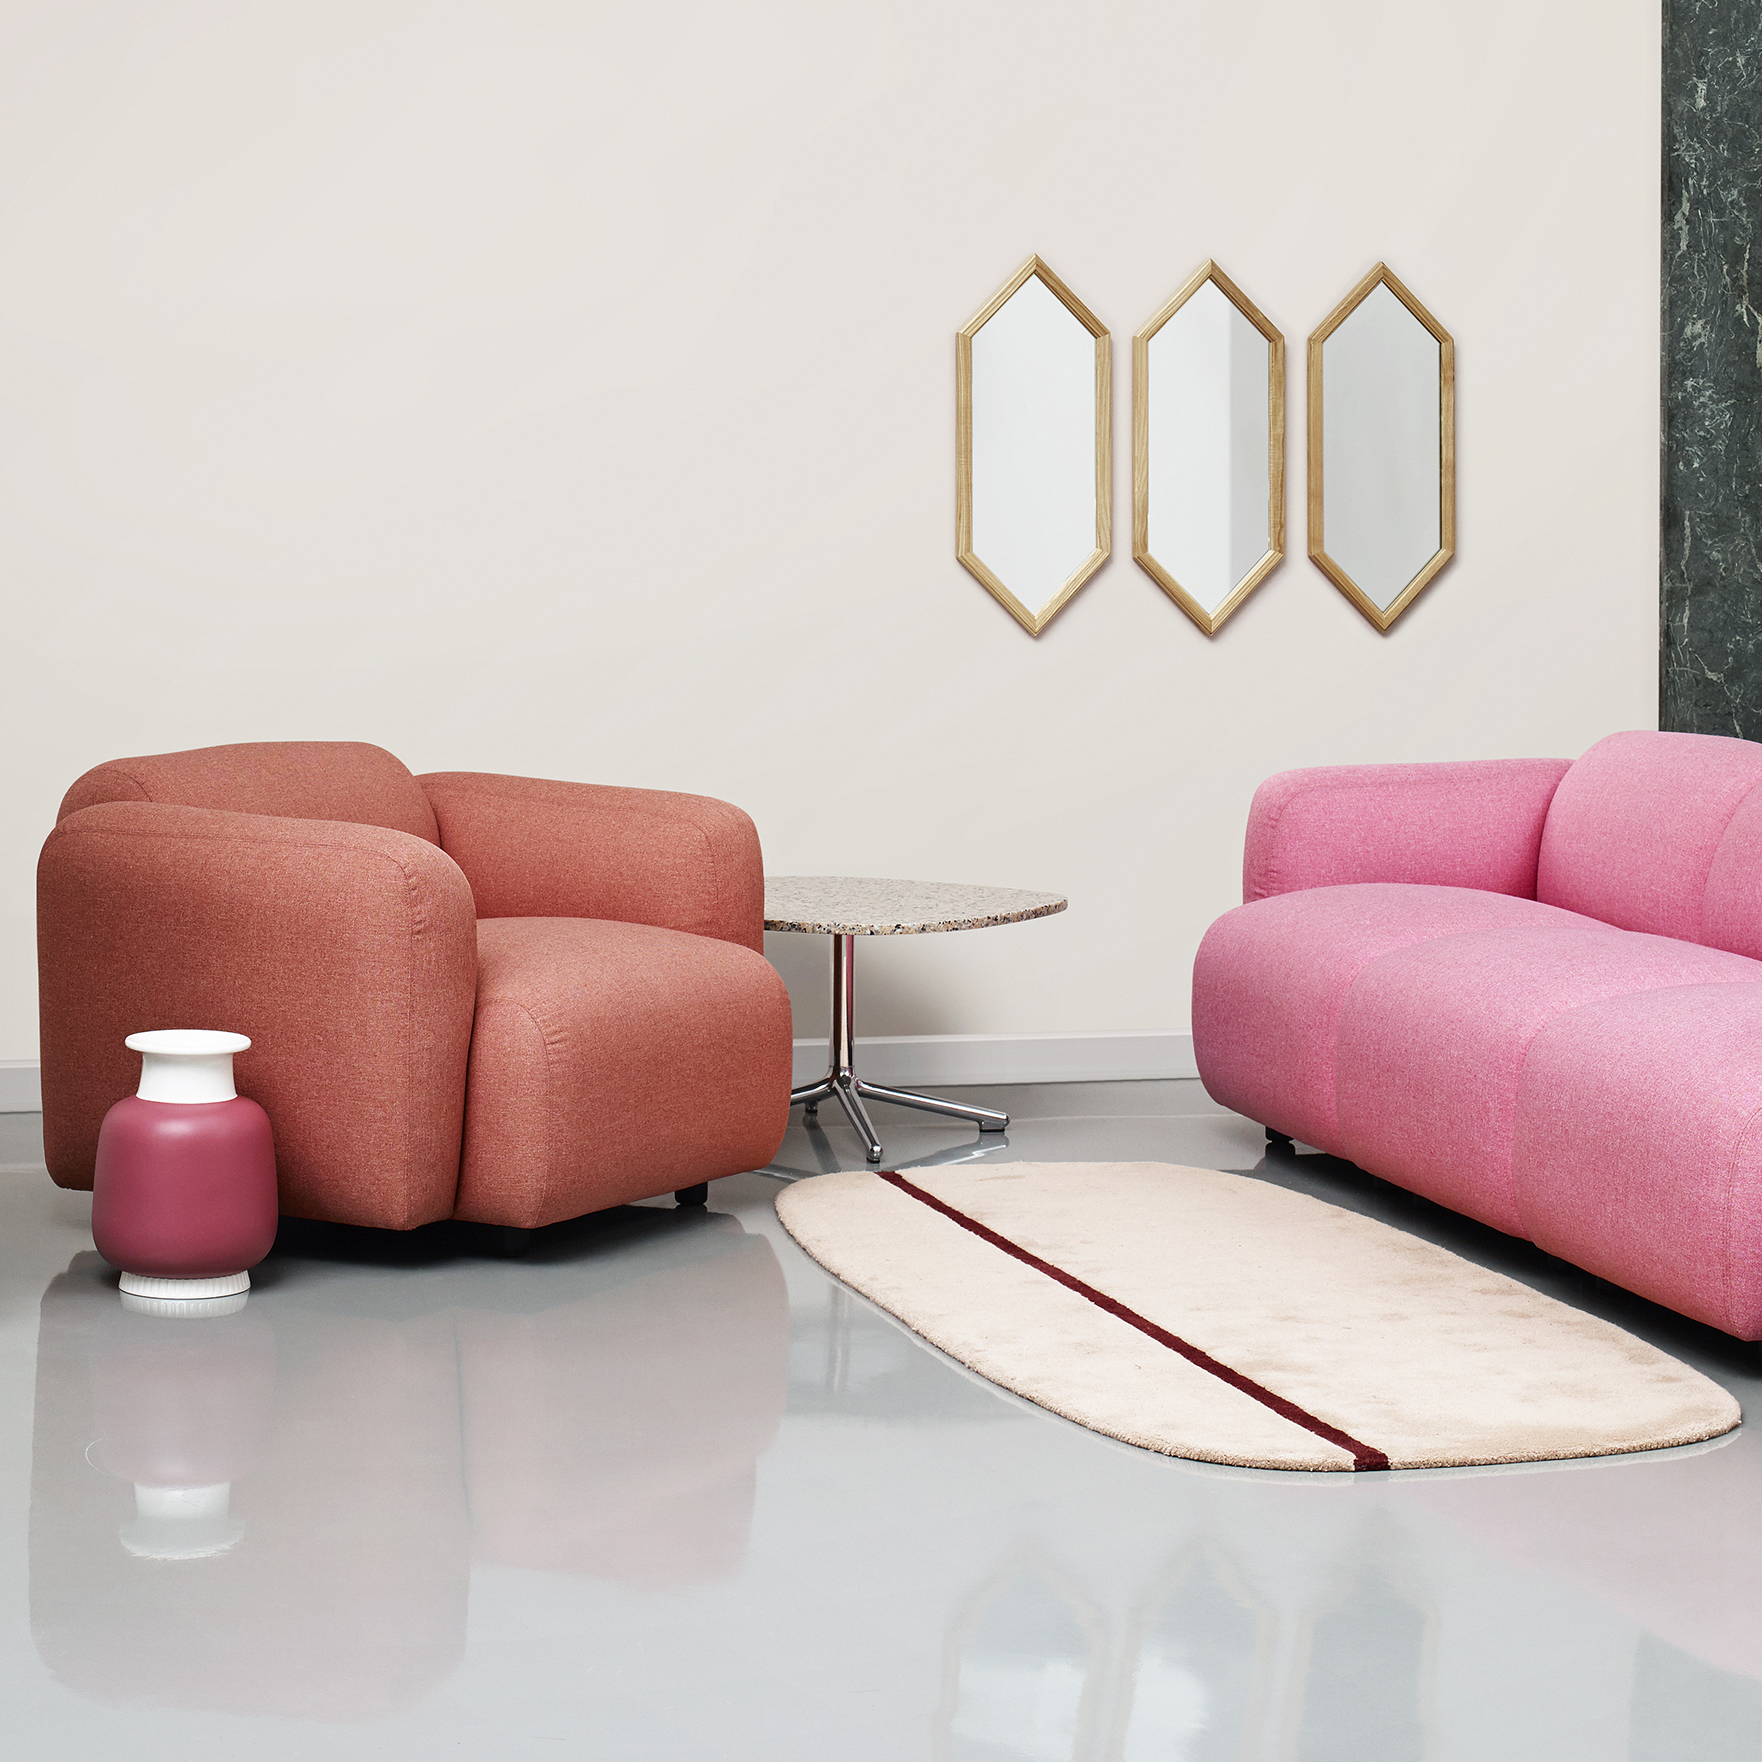 Normann copenhagen oona carpets design simon legald for Scandic design